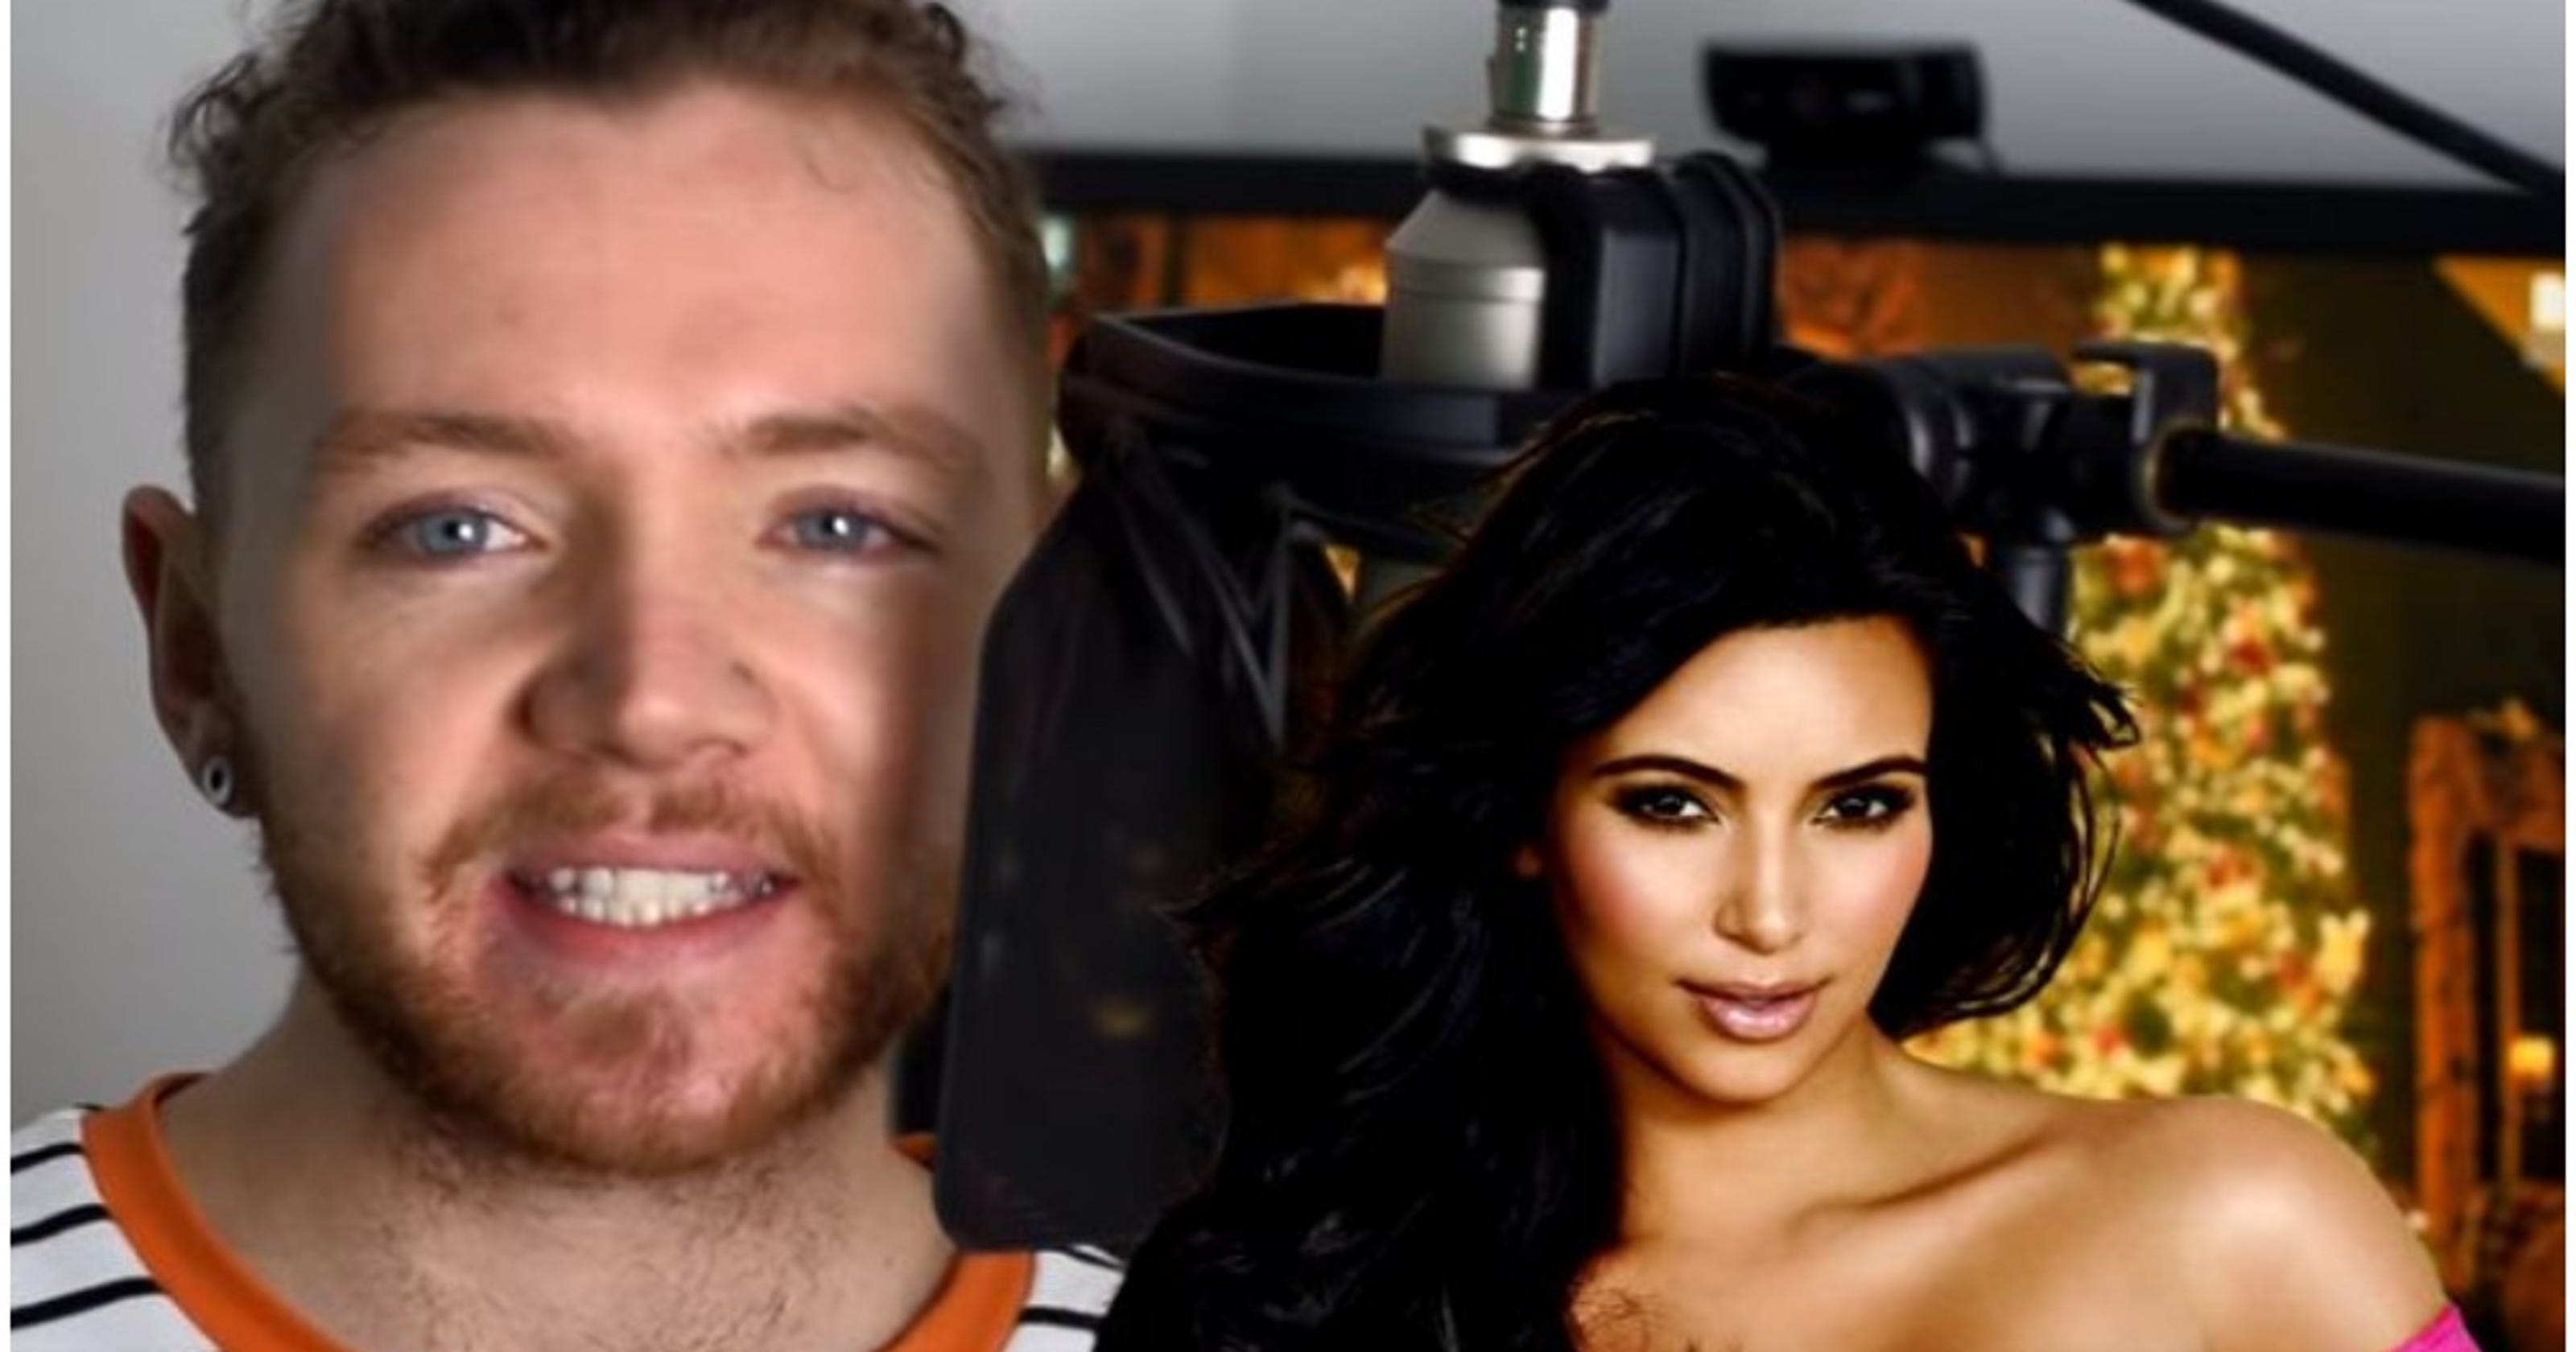 youtube impressionist reads night before christmas in hilarious celeb voices - Twas The Night Before Christmas Youtube